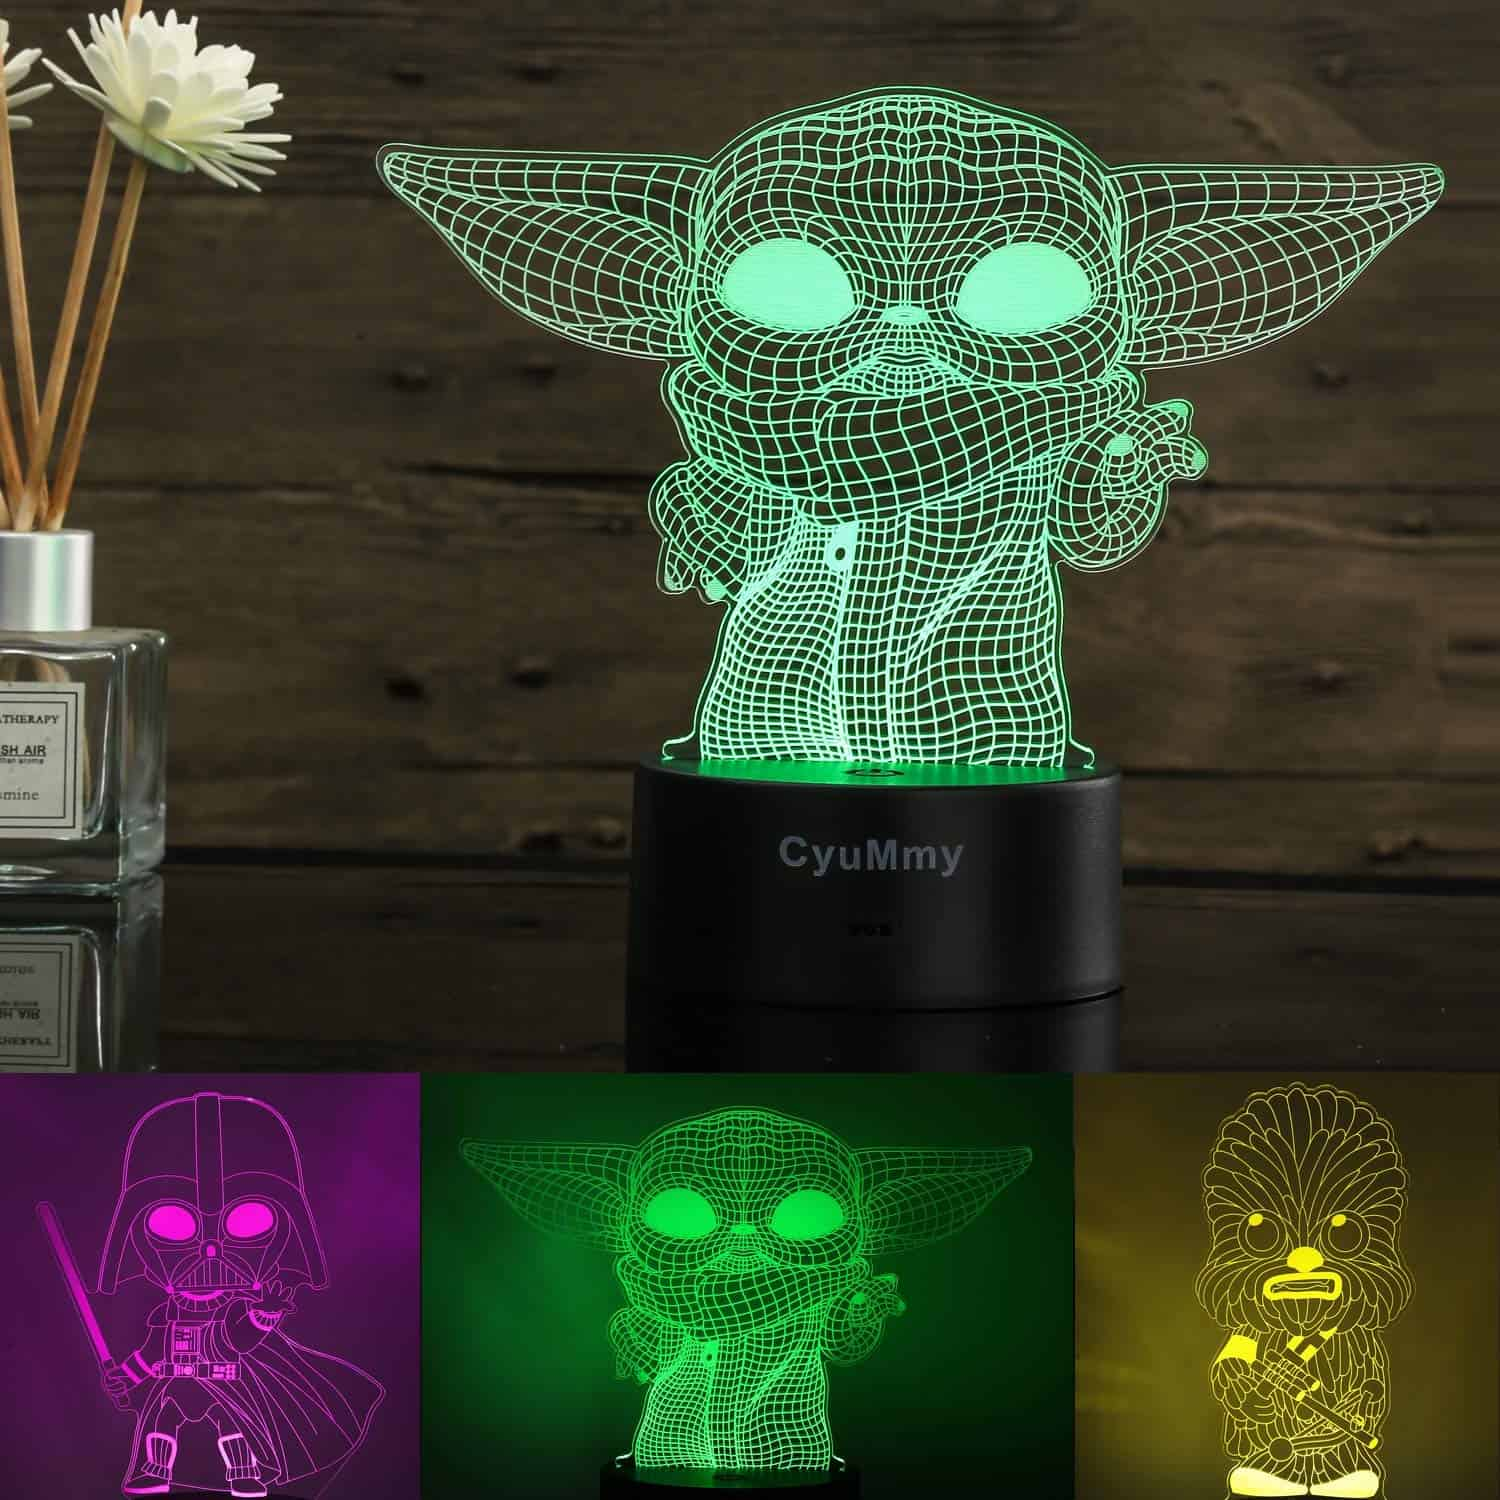 3D Illusion Star Wars Night Light for Kids- CyuMmy